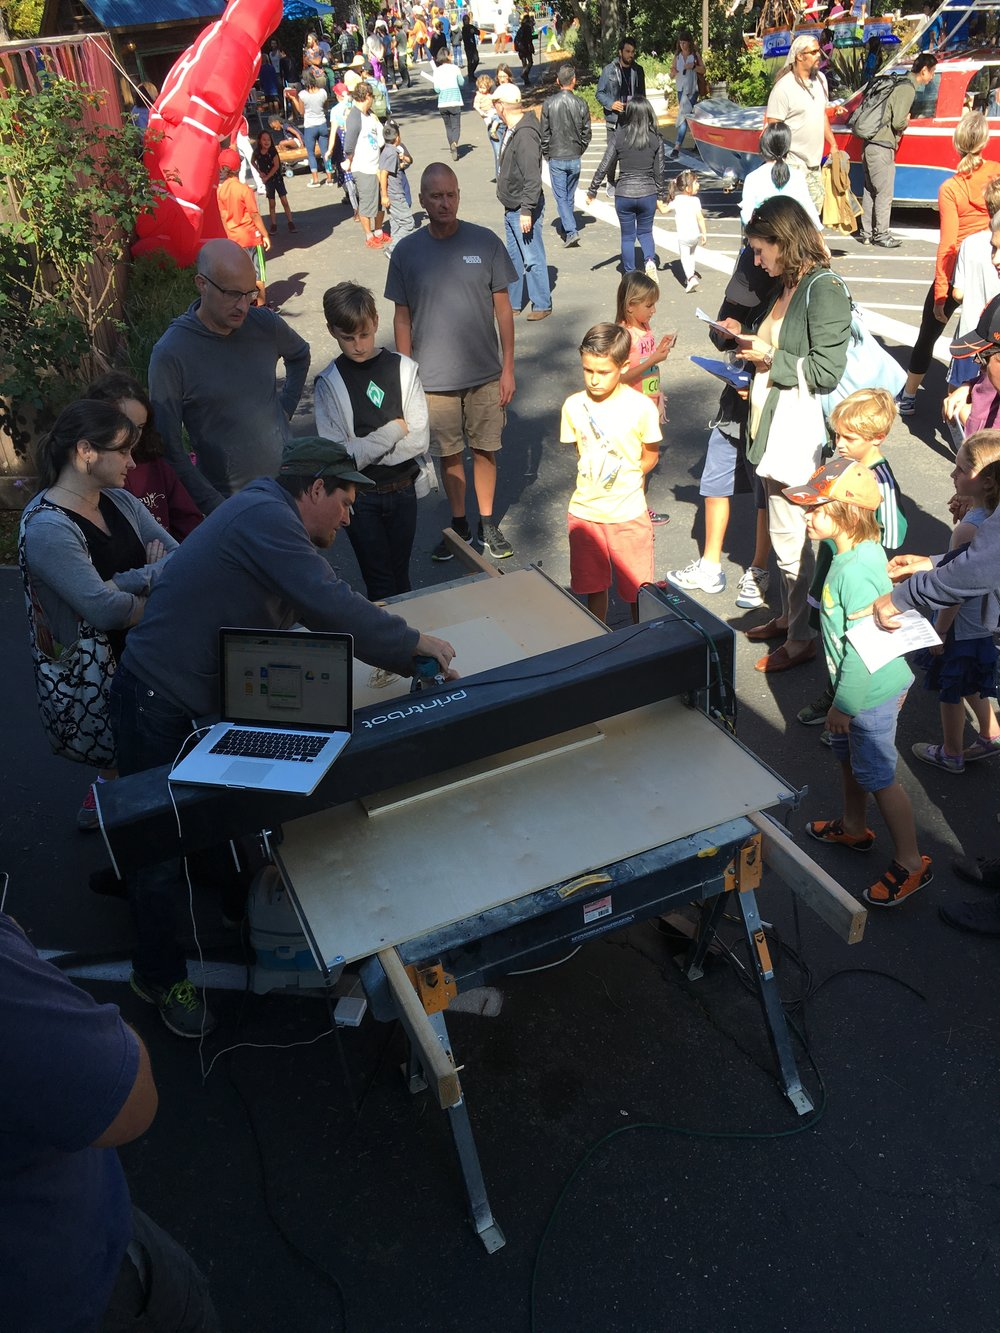 Art Crawler and UCSC OpenLabs were a featured guest at the East Bay Mini Maker Faire in Oakland, Calif., on Sunday, Oct. 23, 2016.  Inventions, creativity, and resourcefulness were all a part of this event and we were honored to be included.